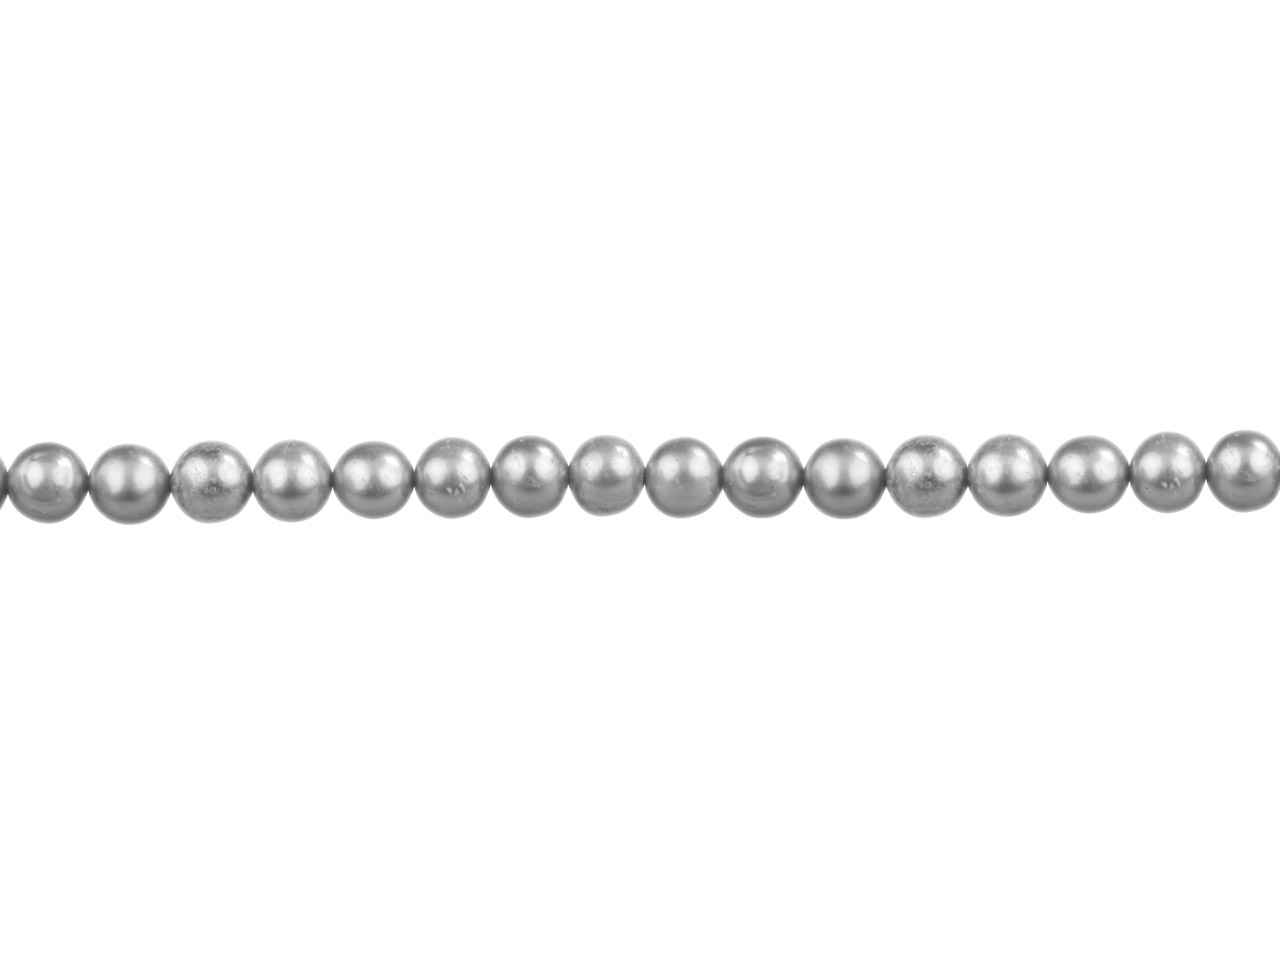 Cultured Pearls Fresh Water,        6-6.5mm, Silver Grey, Potato Round, 16